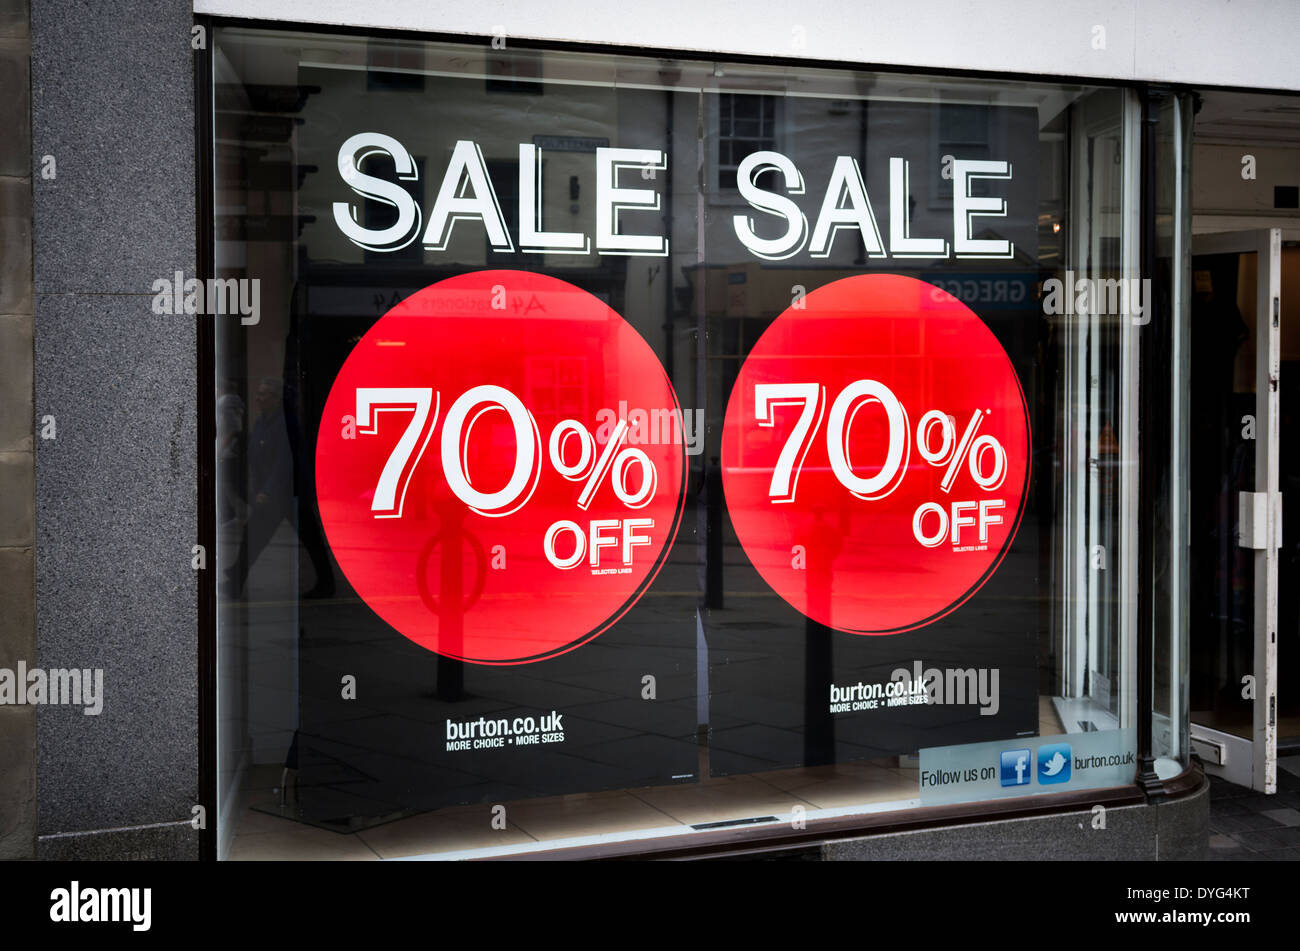 Burton's 70% sale promotion in West Country UK - Stock Image